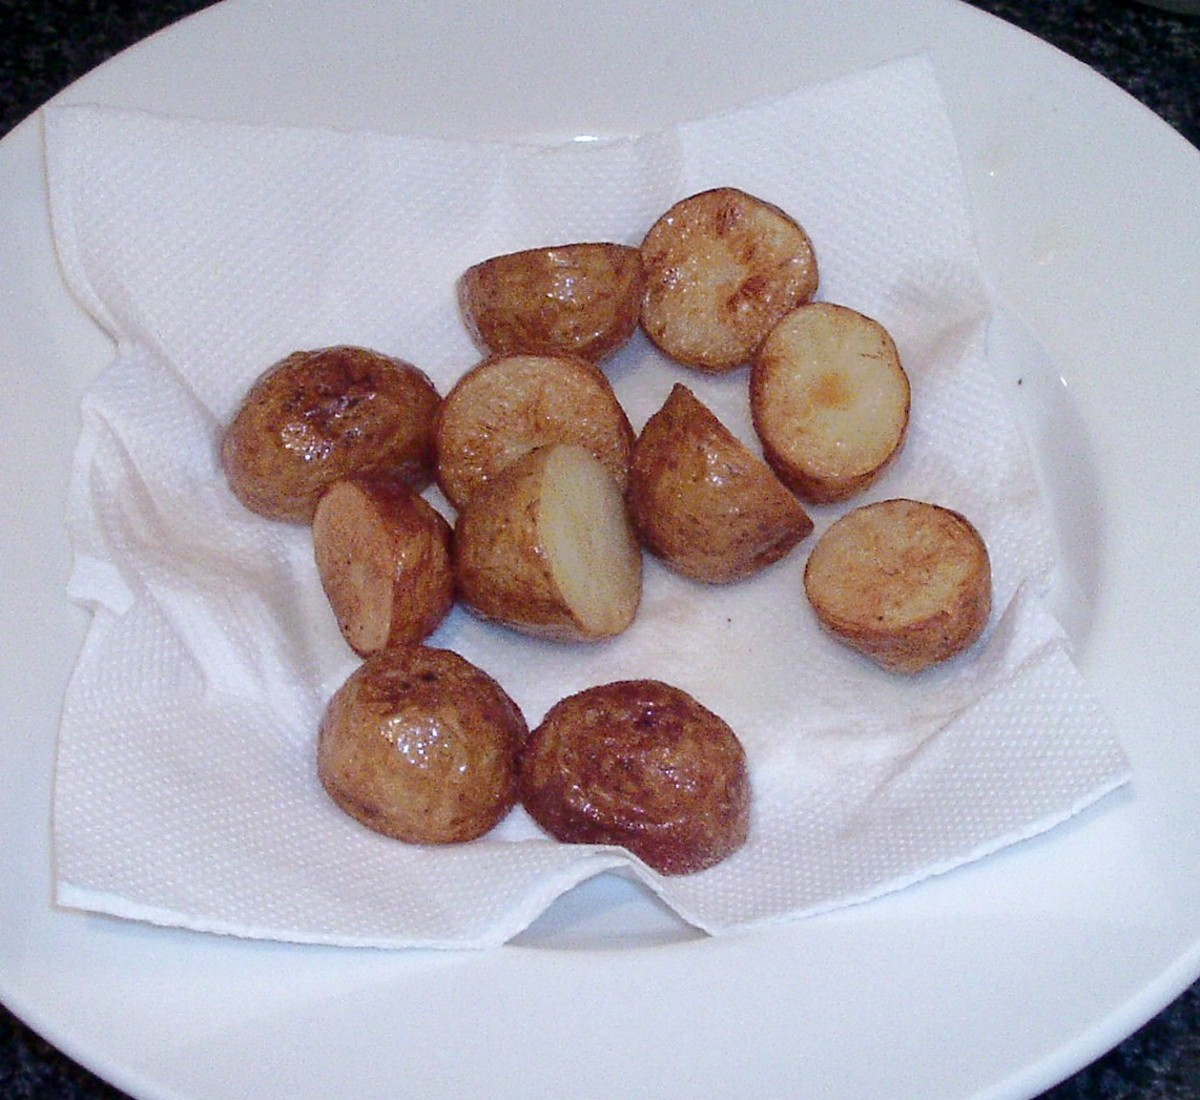 Draining deep fried potatoes